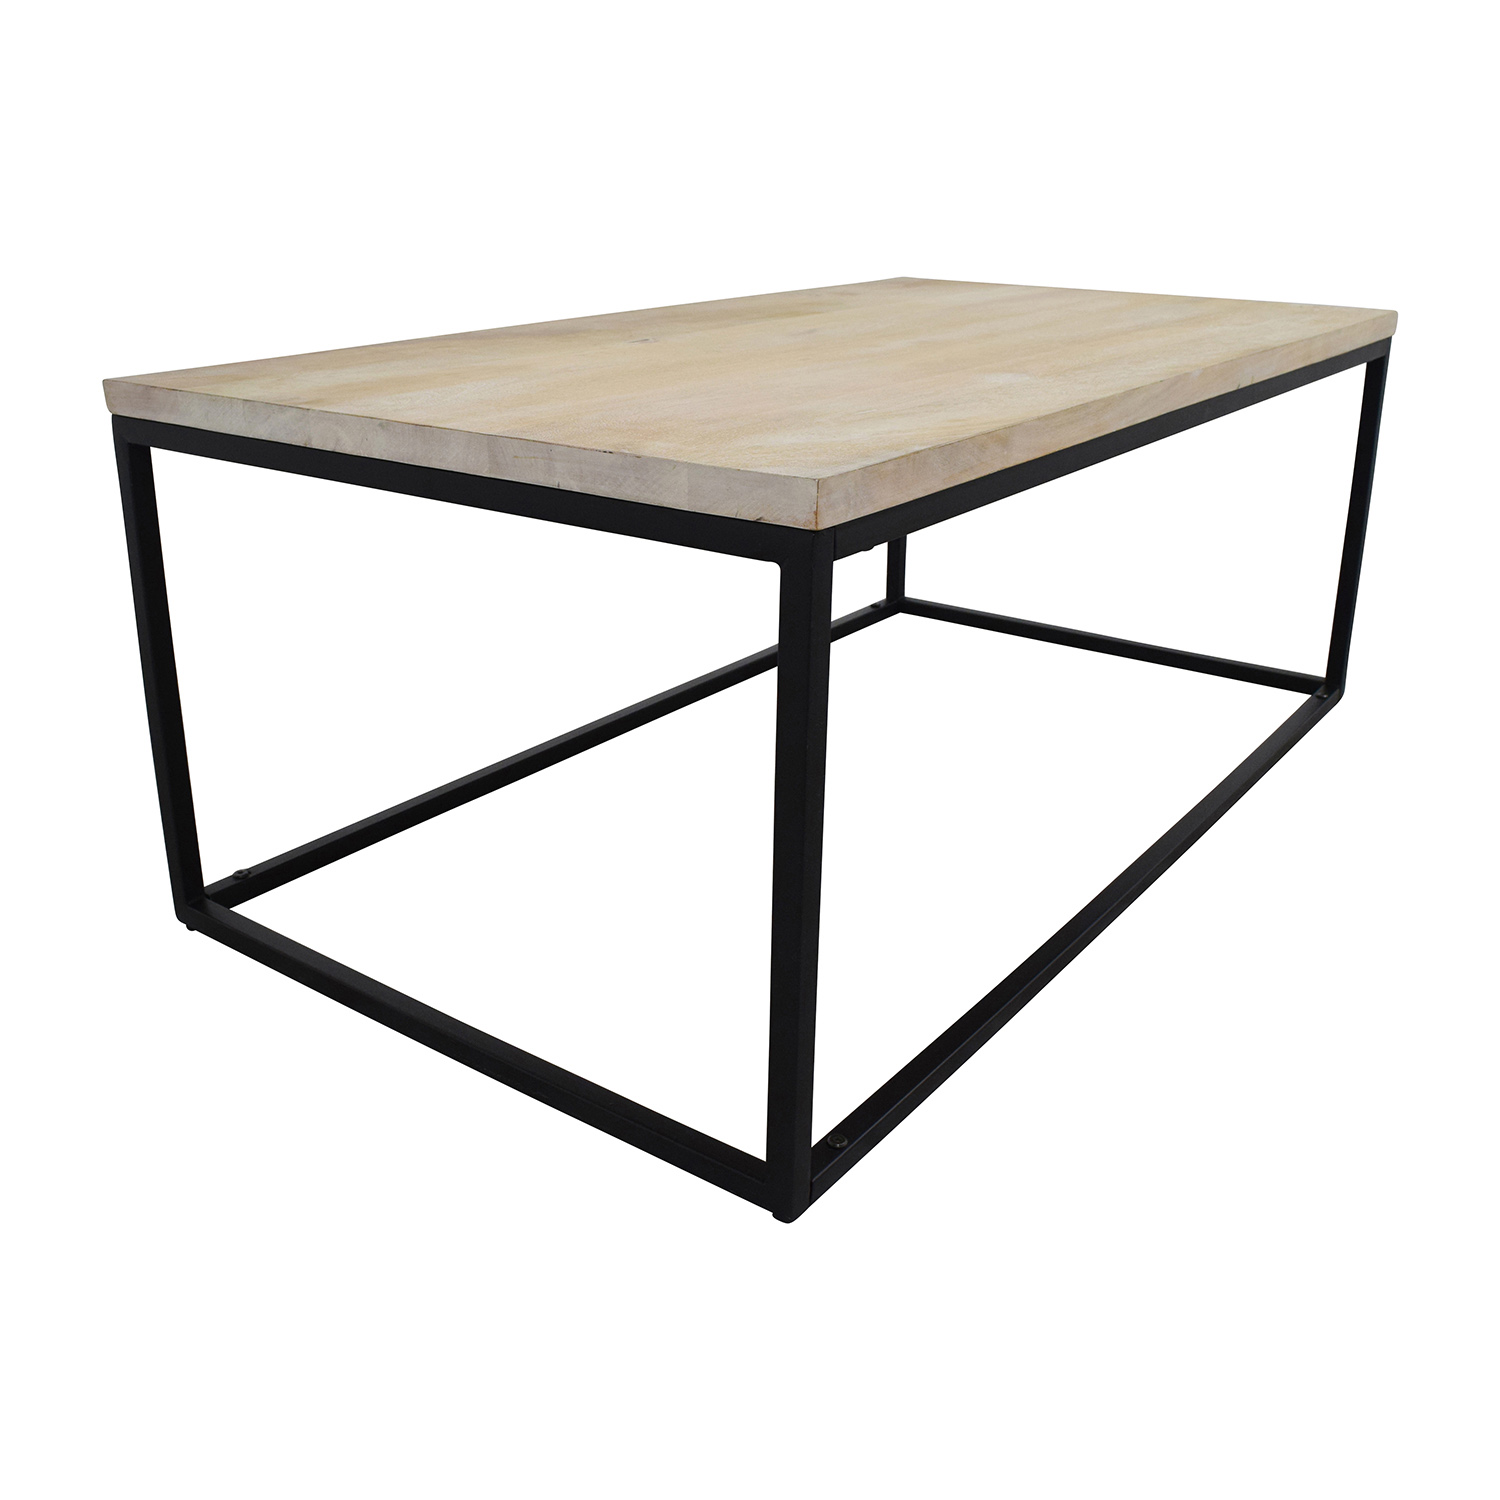 ... West Elm West Elm Box Frame Coffee Table White Wash Coffee Tables ...